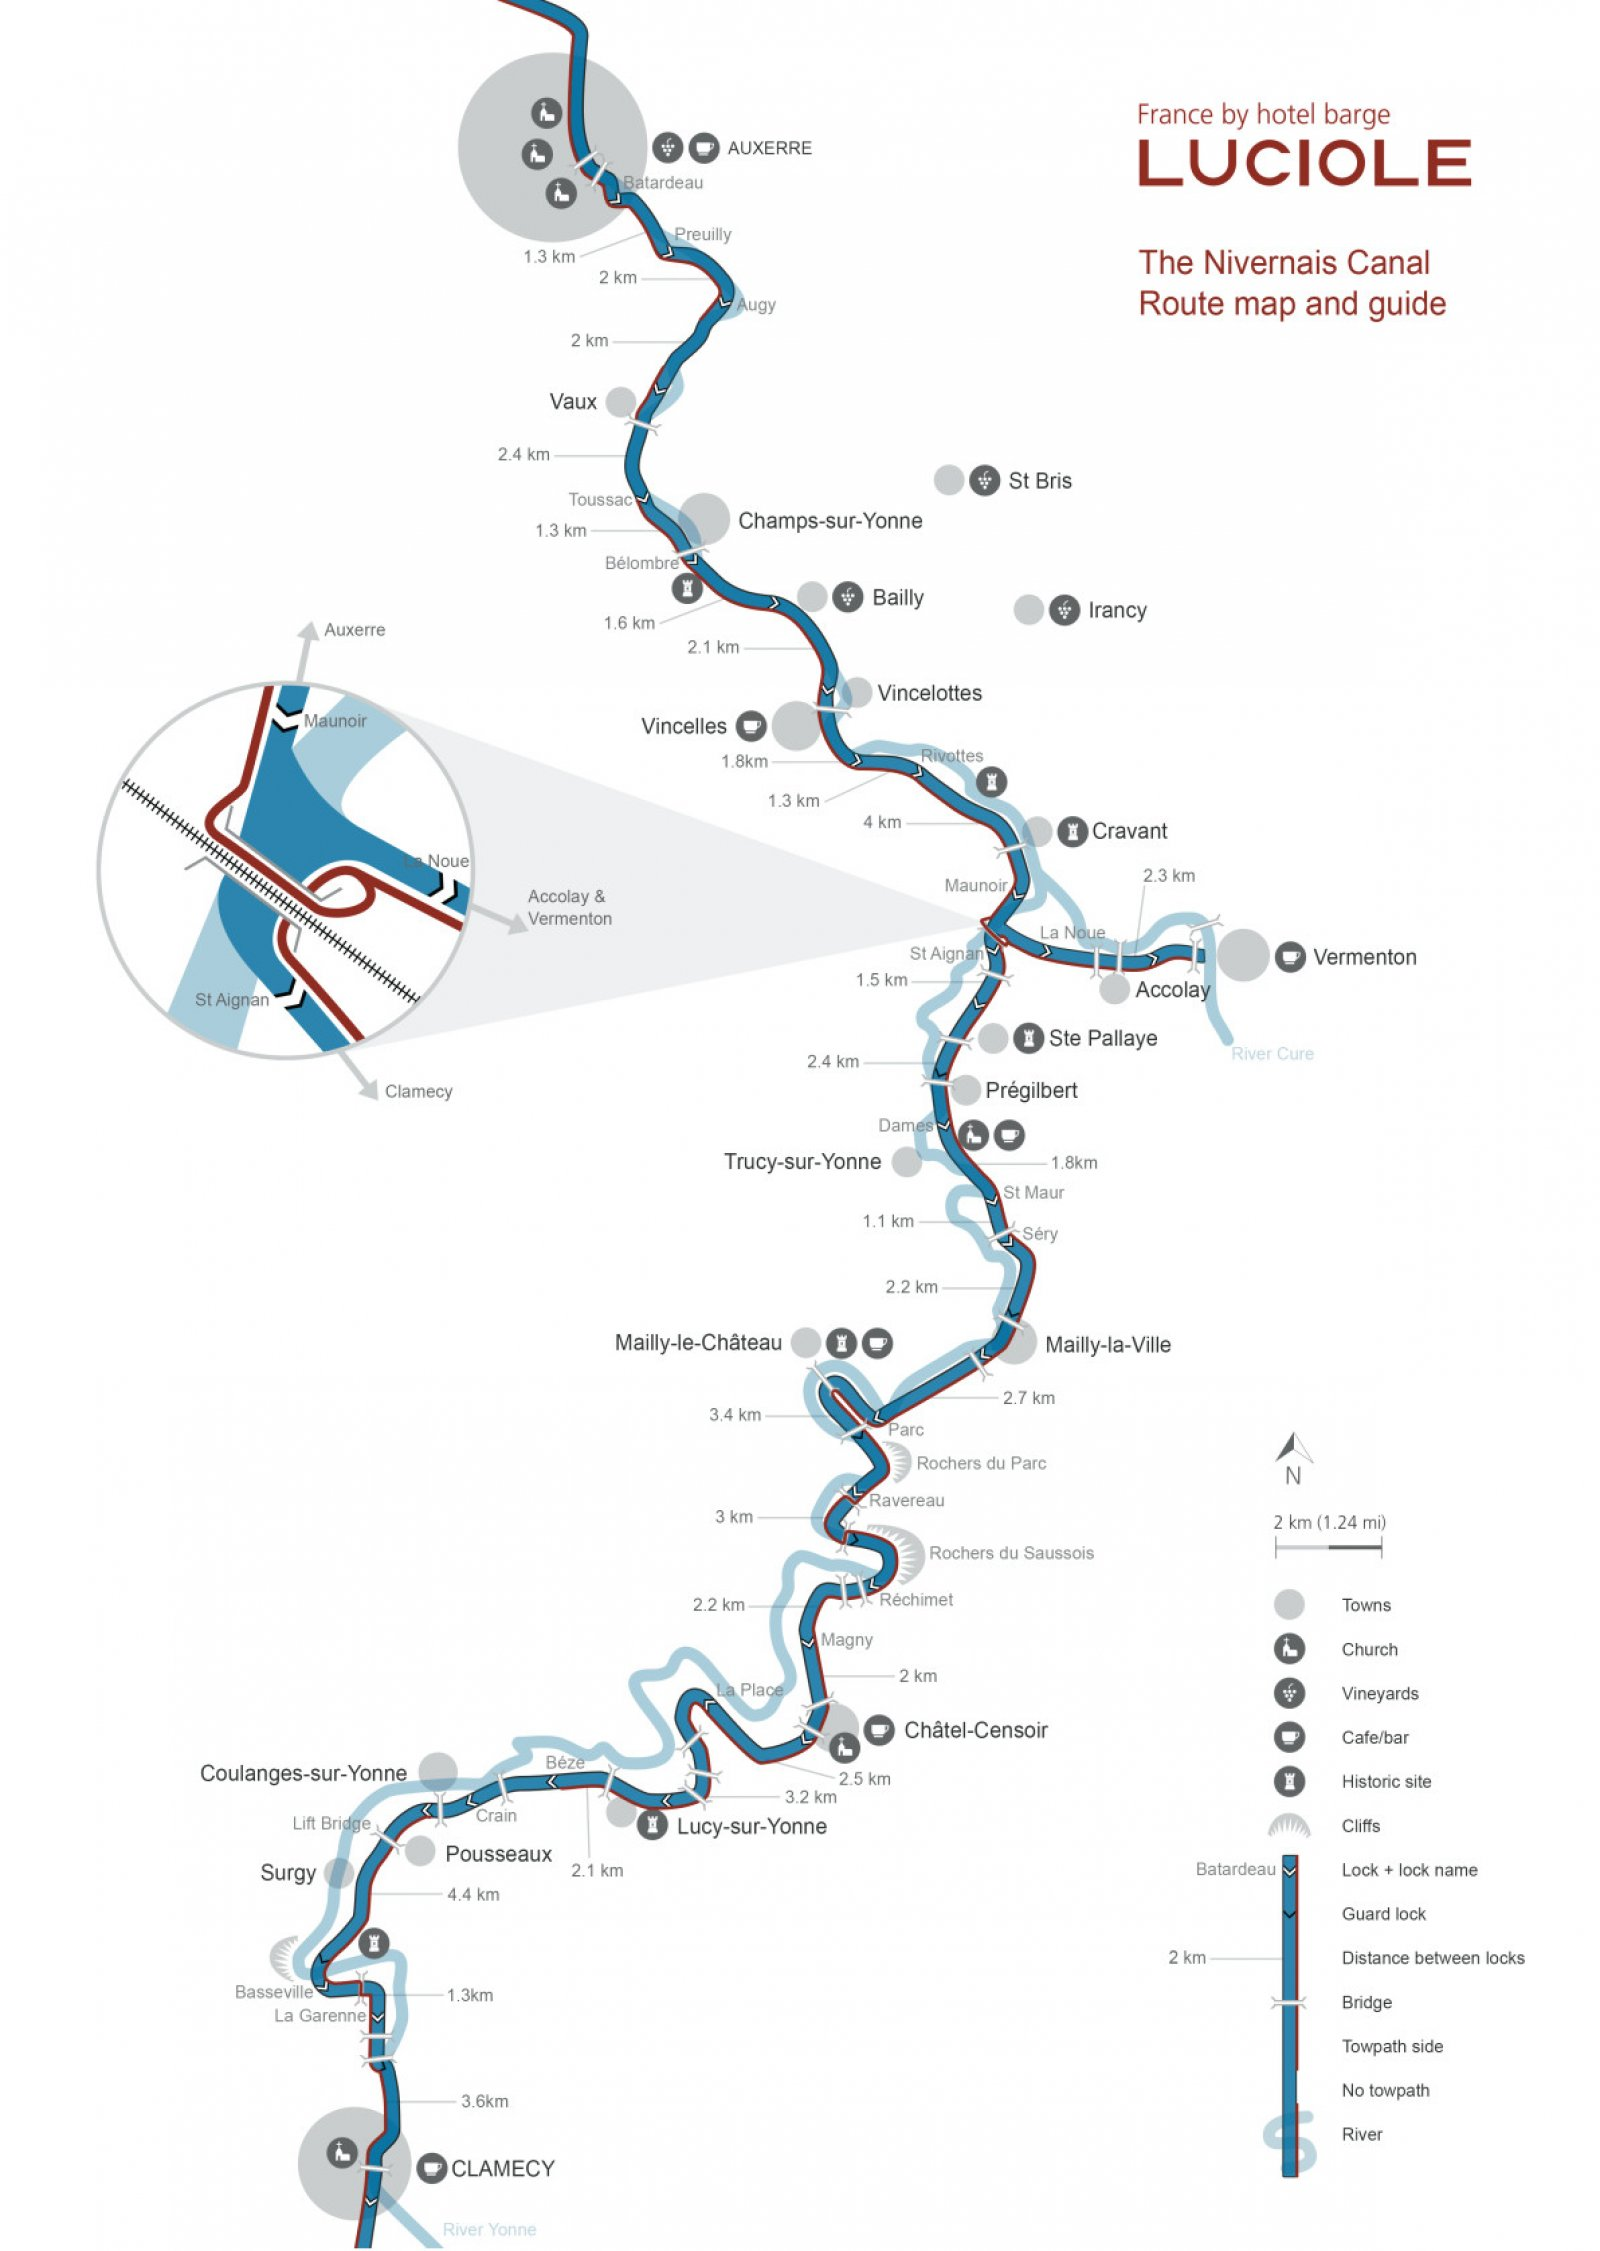 map of the barge luciole route